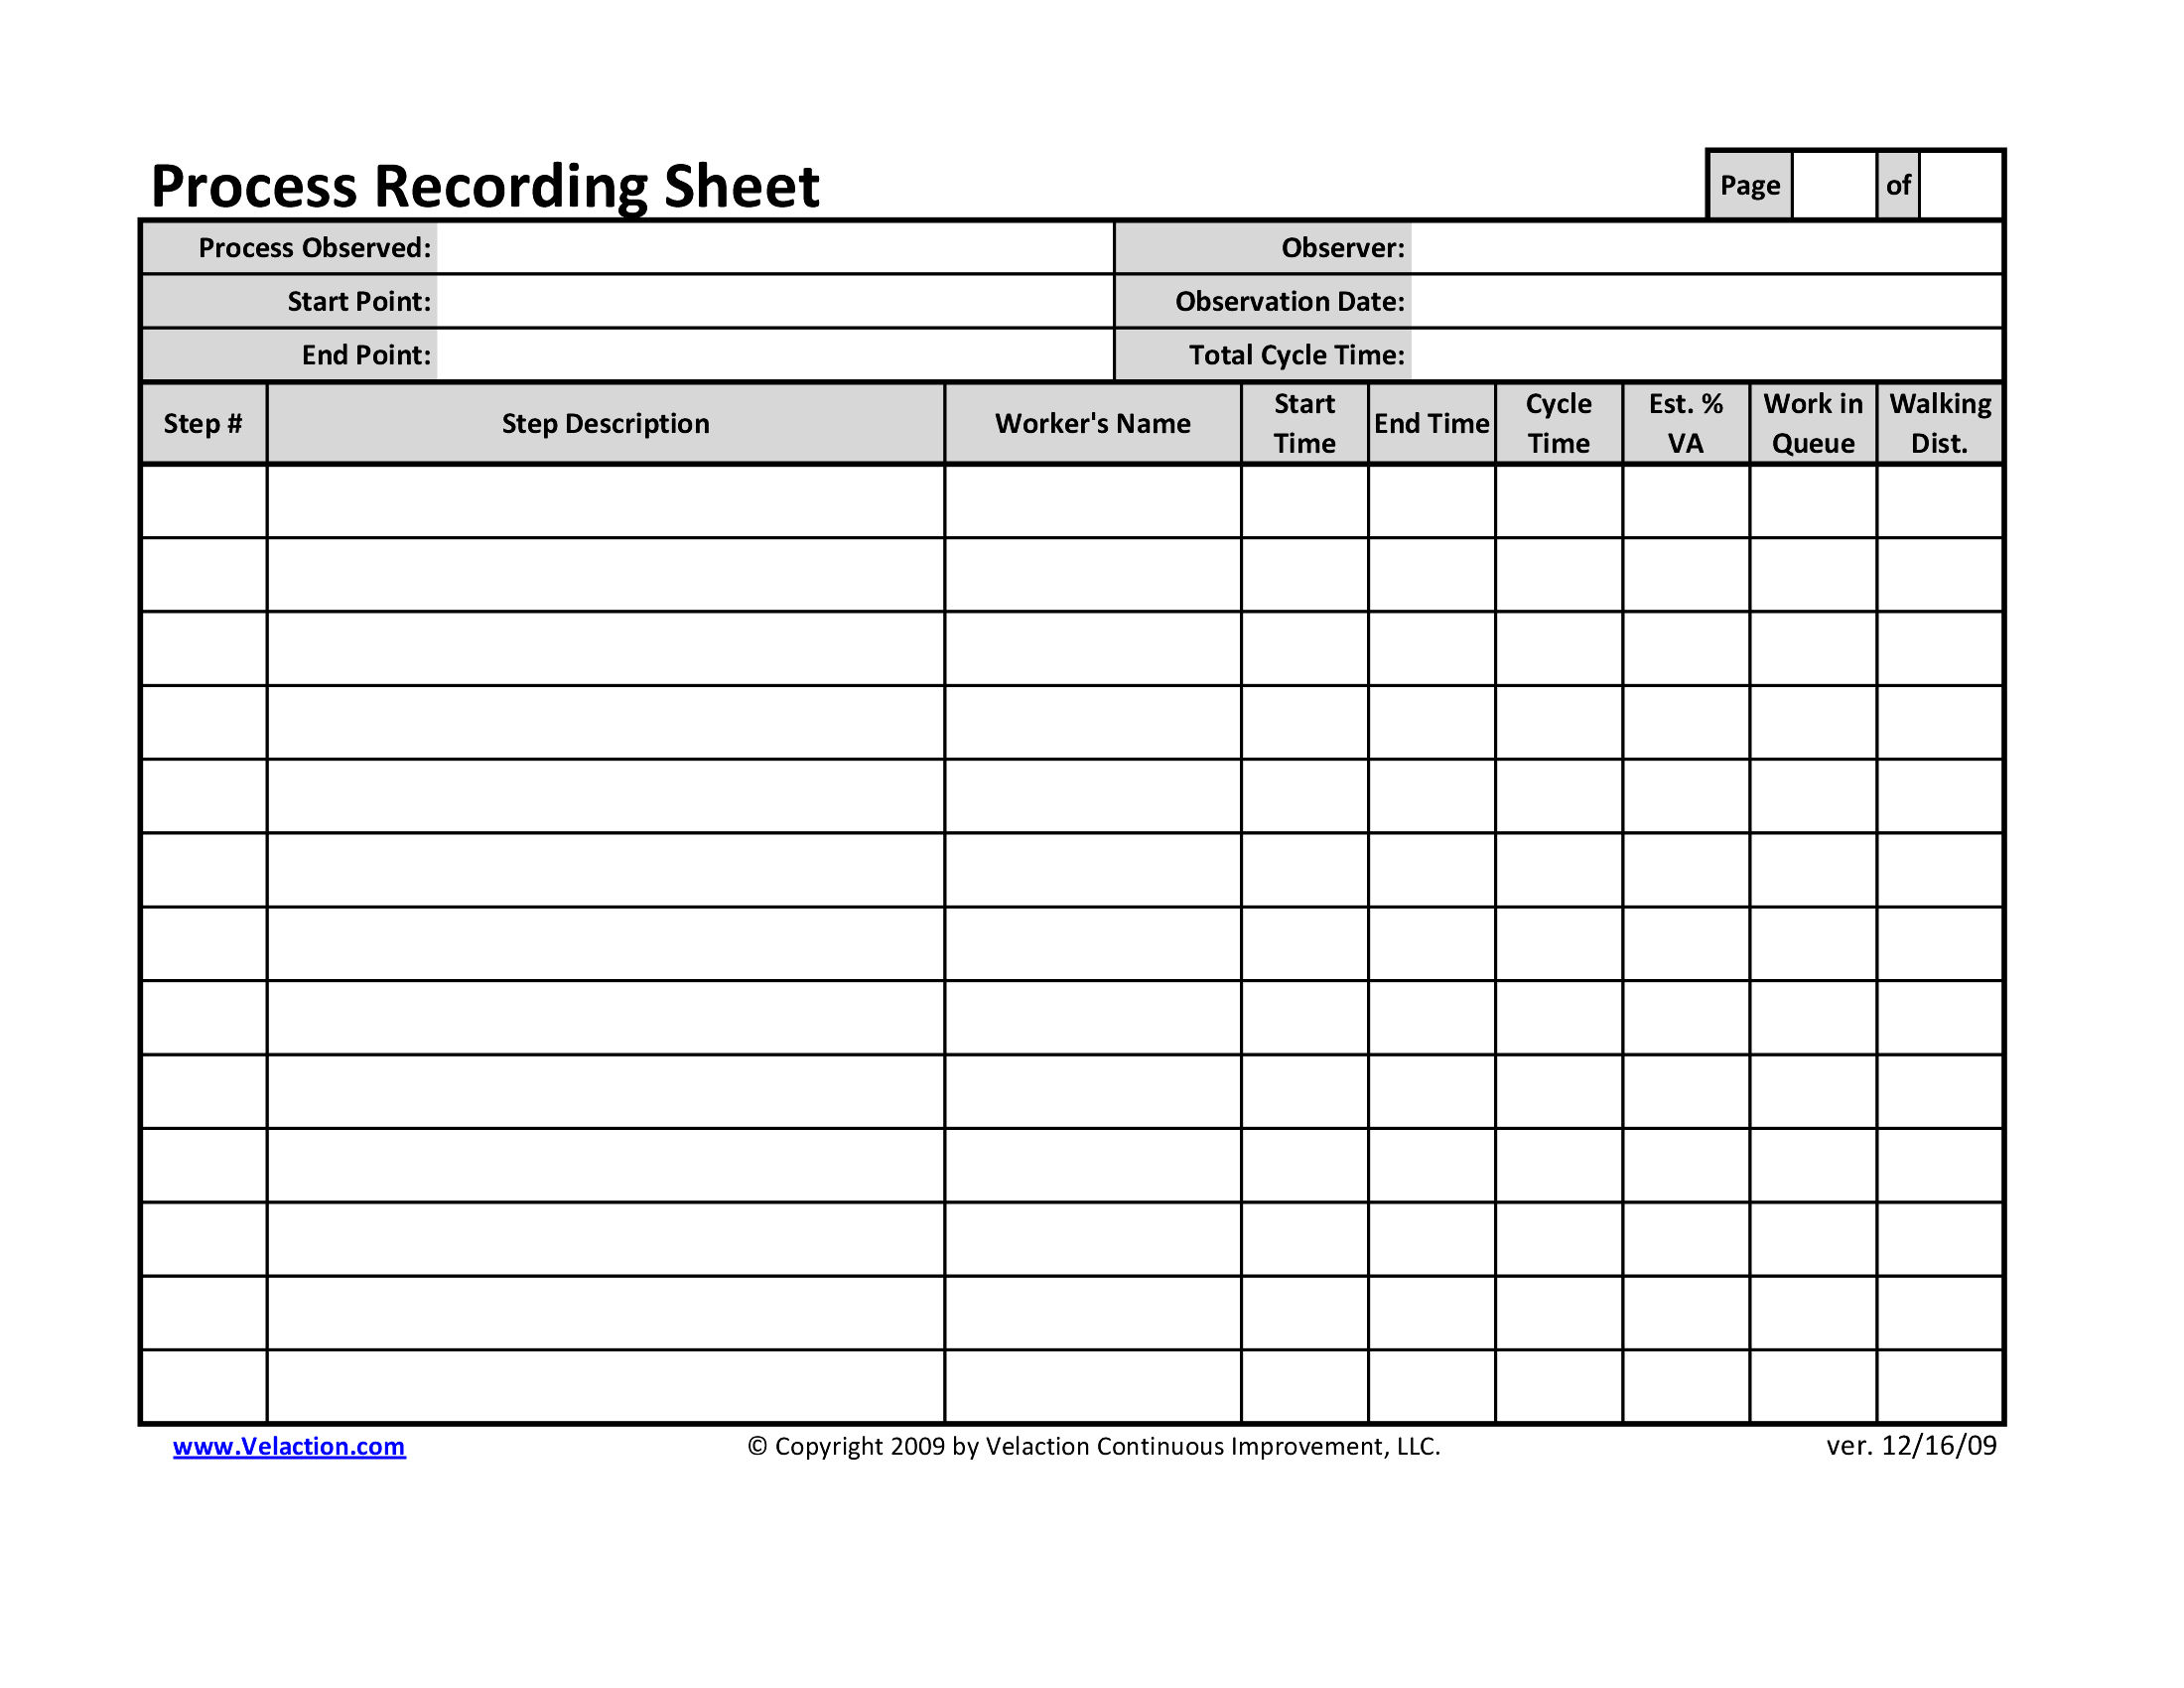 electronic checklist template - office process recording sheet